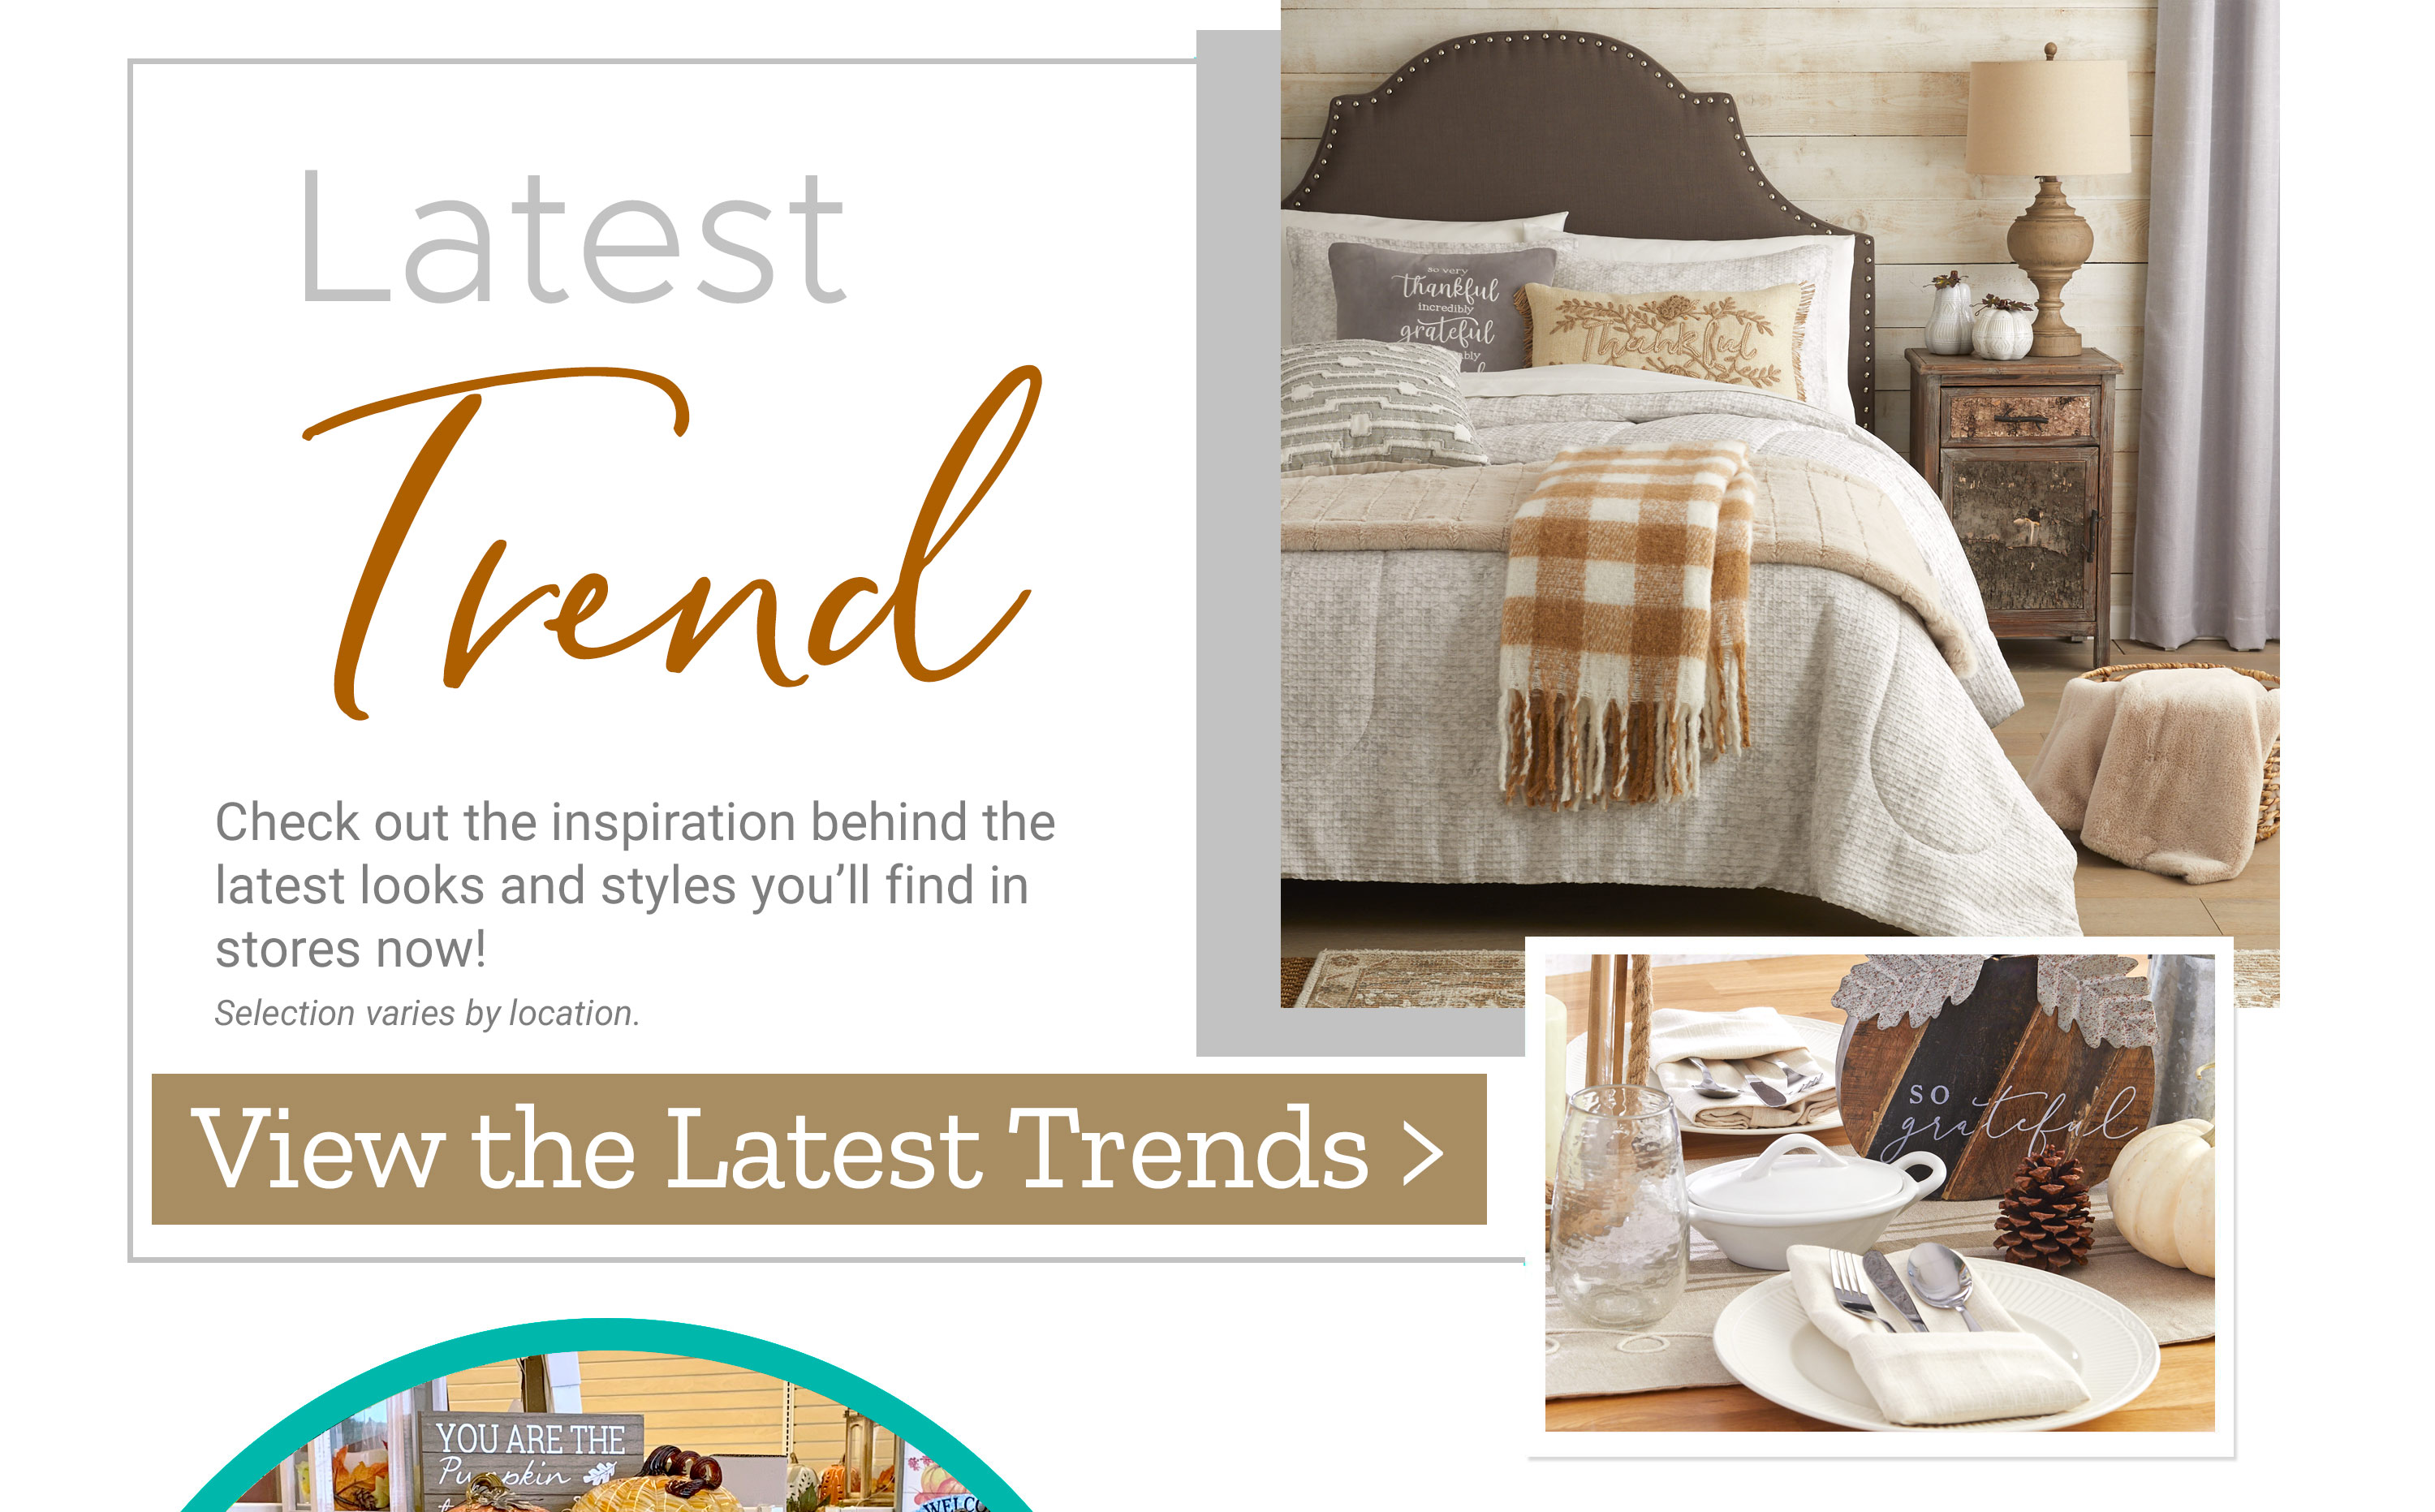 Latest Trend - Check out the inspiration behind the latest looks and styles you'll find in stores now! View the Latest Trends >